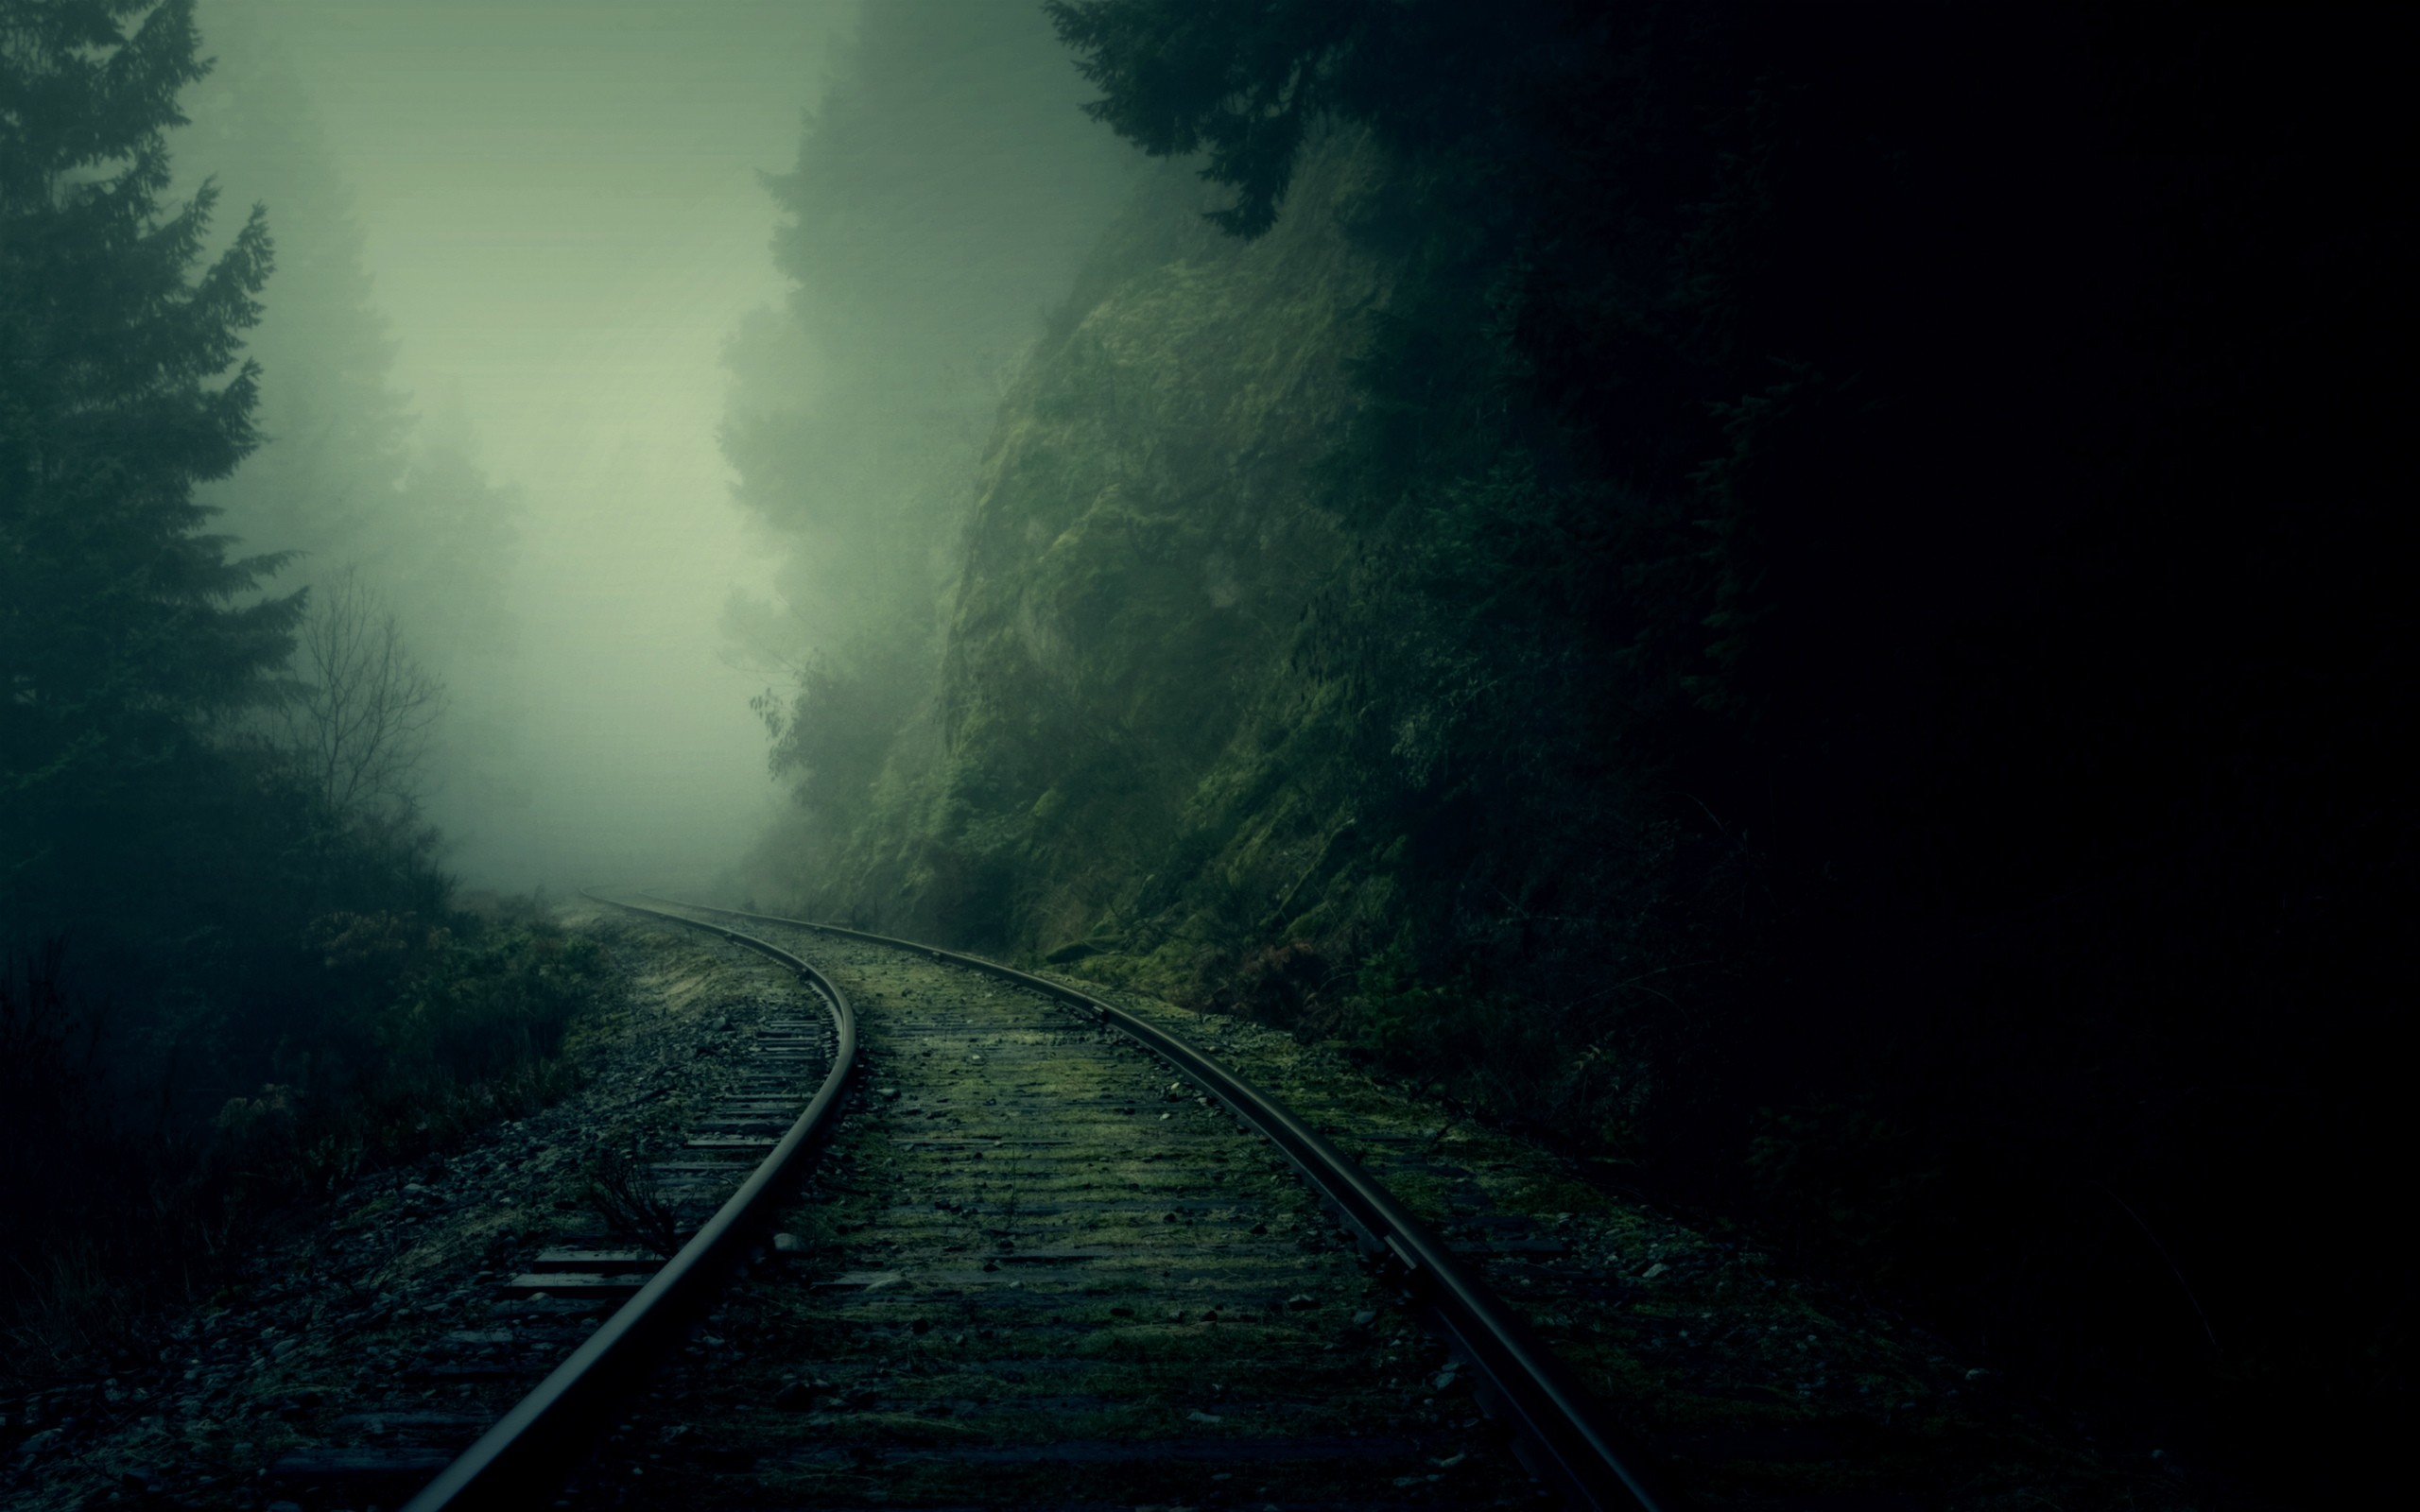 Dark Railroad Landscape Wallpaper HD 1962 Wallpaper High Resolution 2560x1600